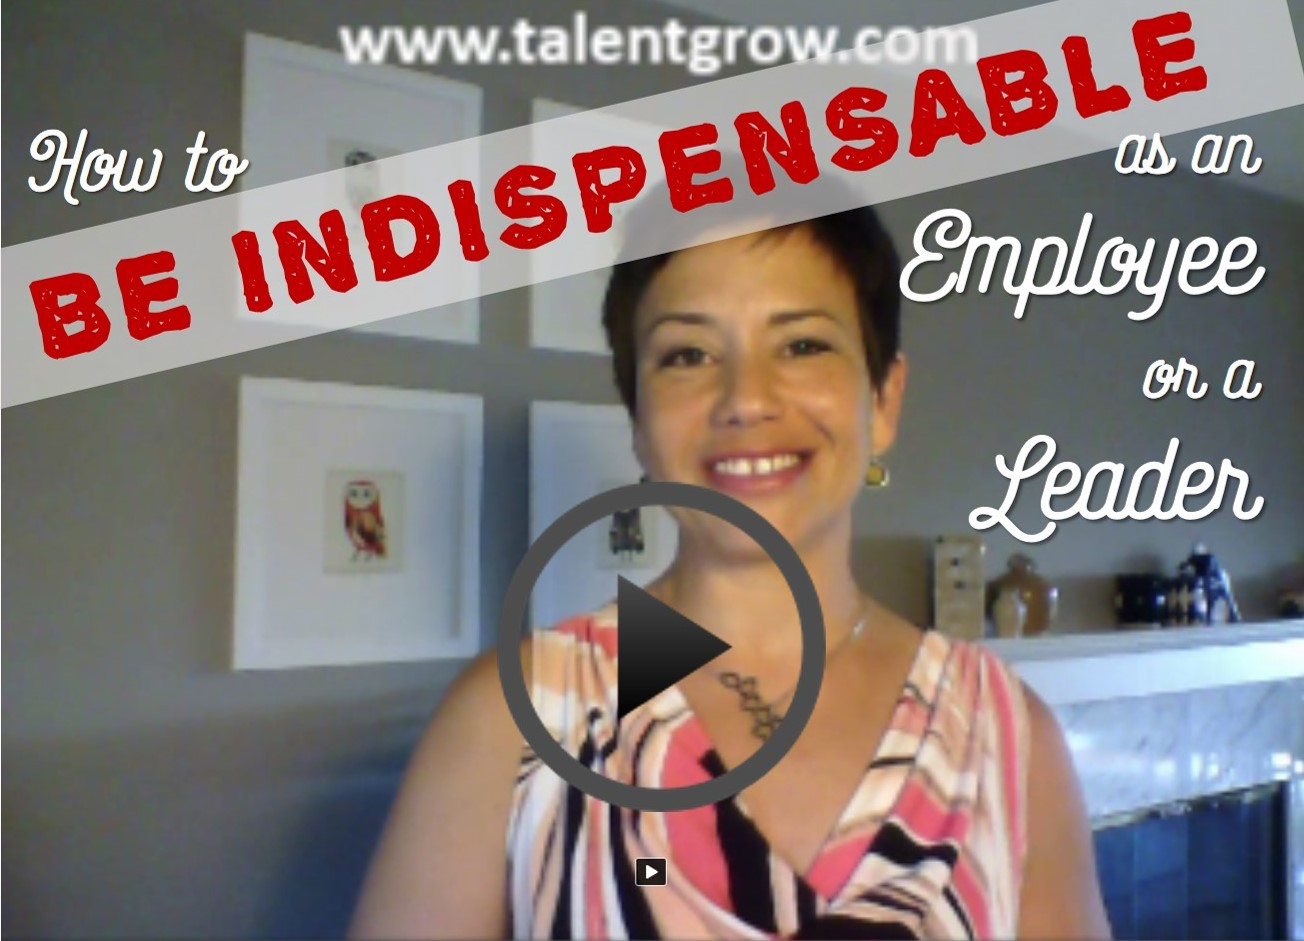 Be Indispensable as an Employee or a Leader